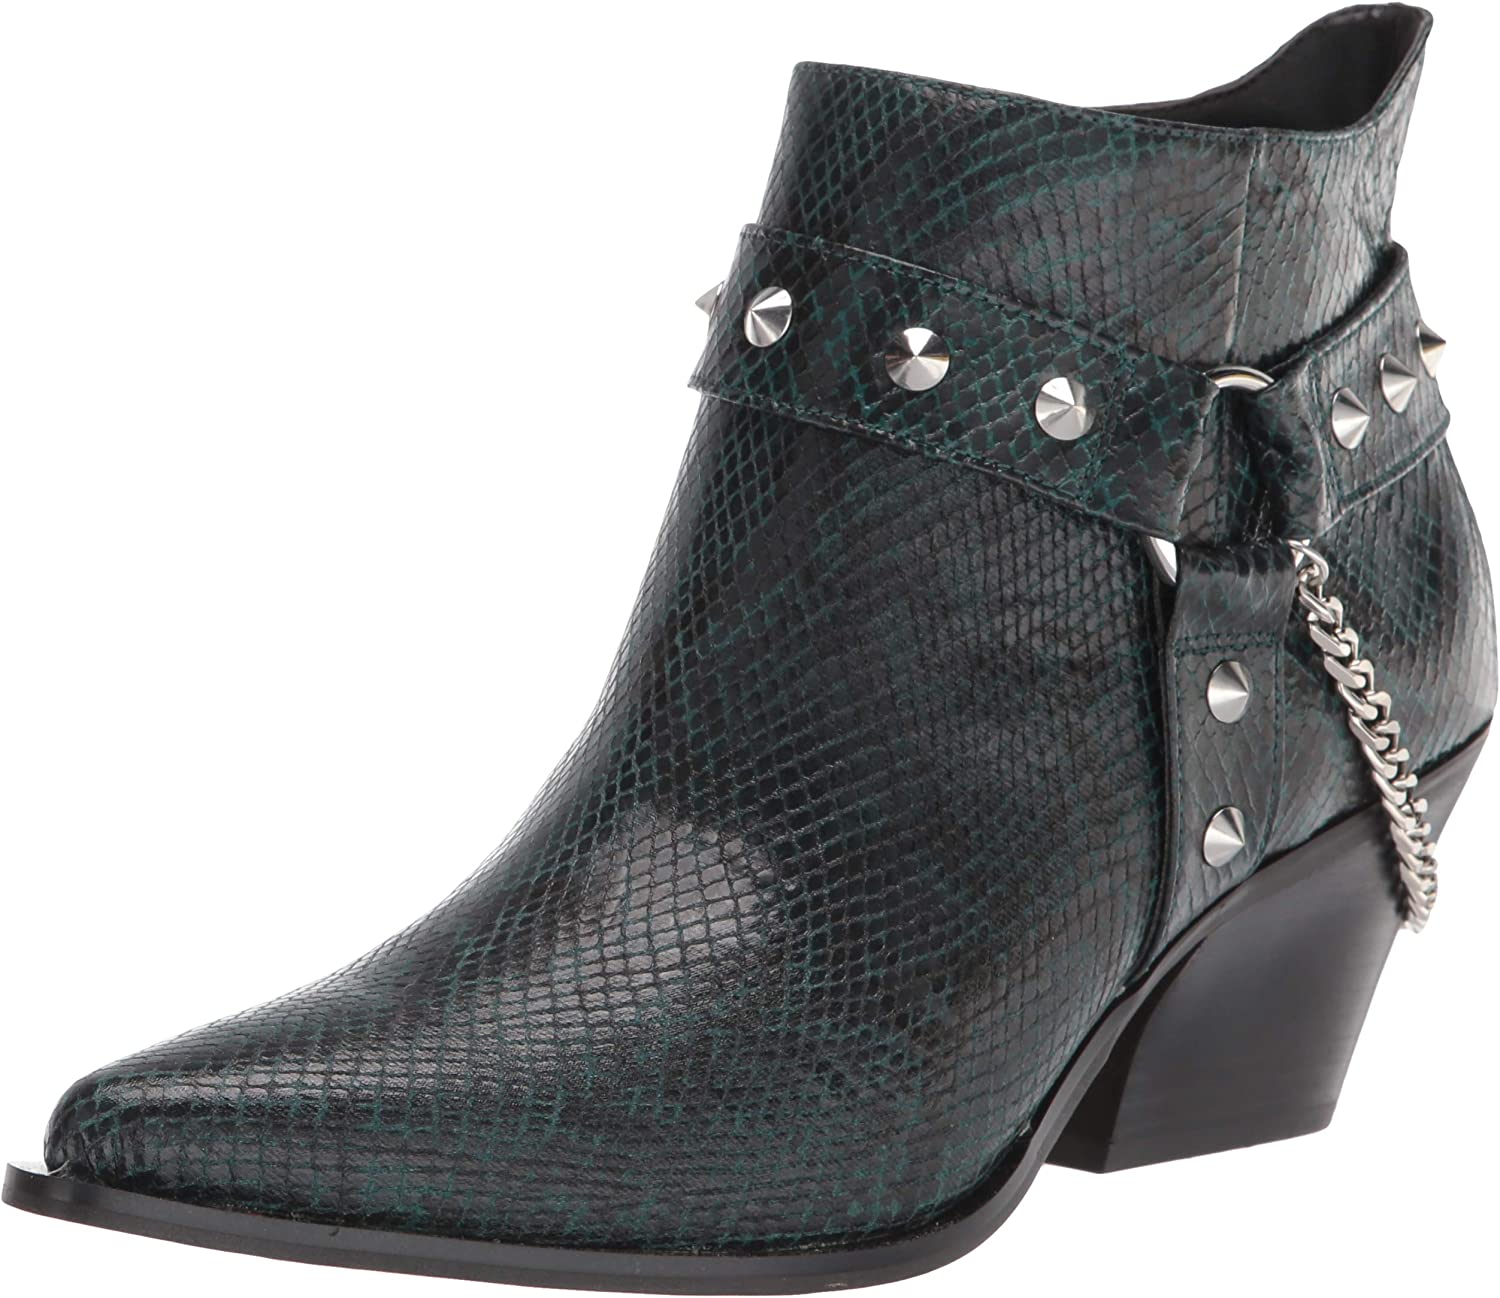 Jessica Simpson Womens Zayrie Ankle Chain Boots Cheap mail Max 80% OFF order shopping Embossed